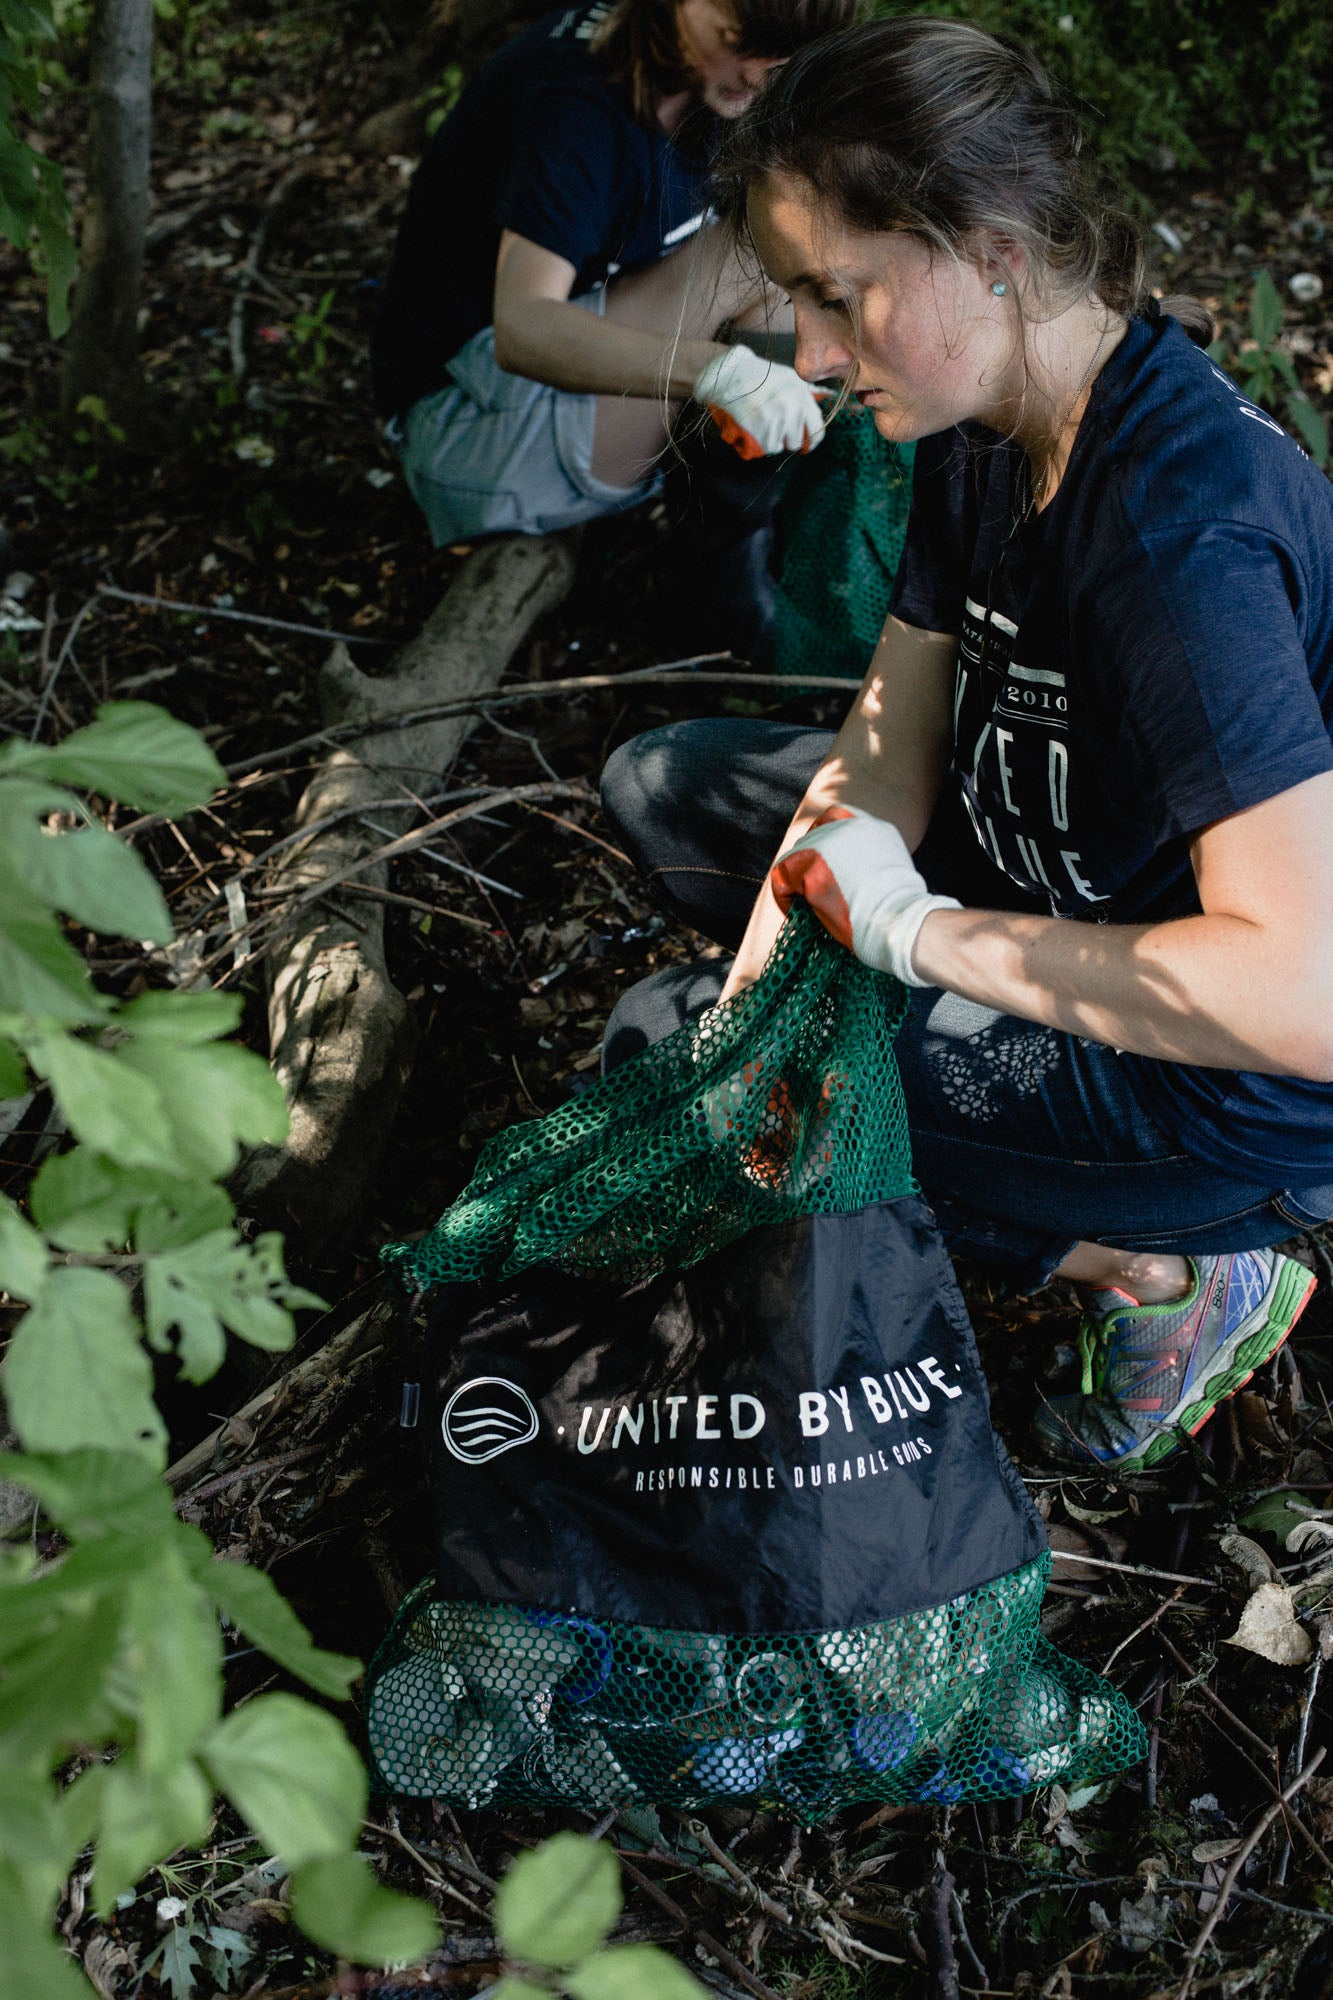 United by Blue cleanup at Bartrams Garden